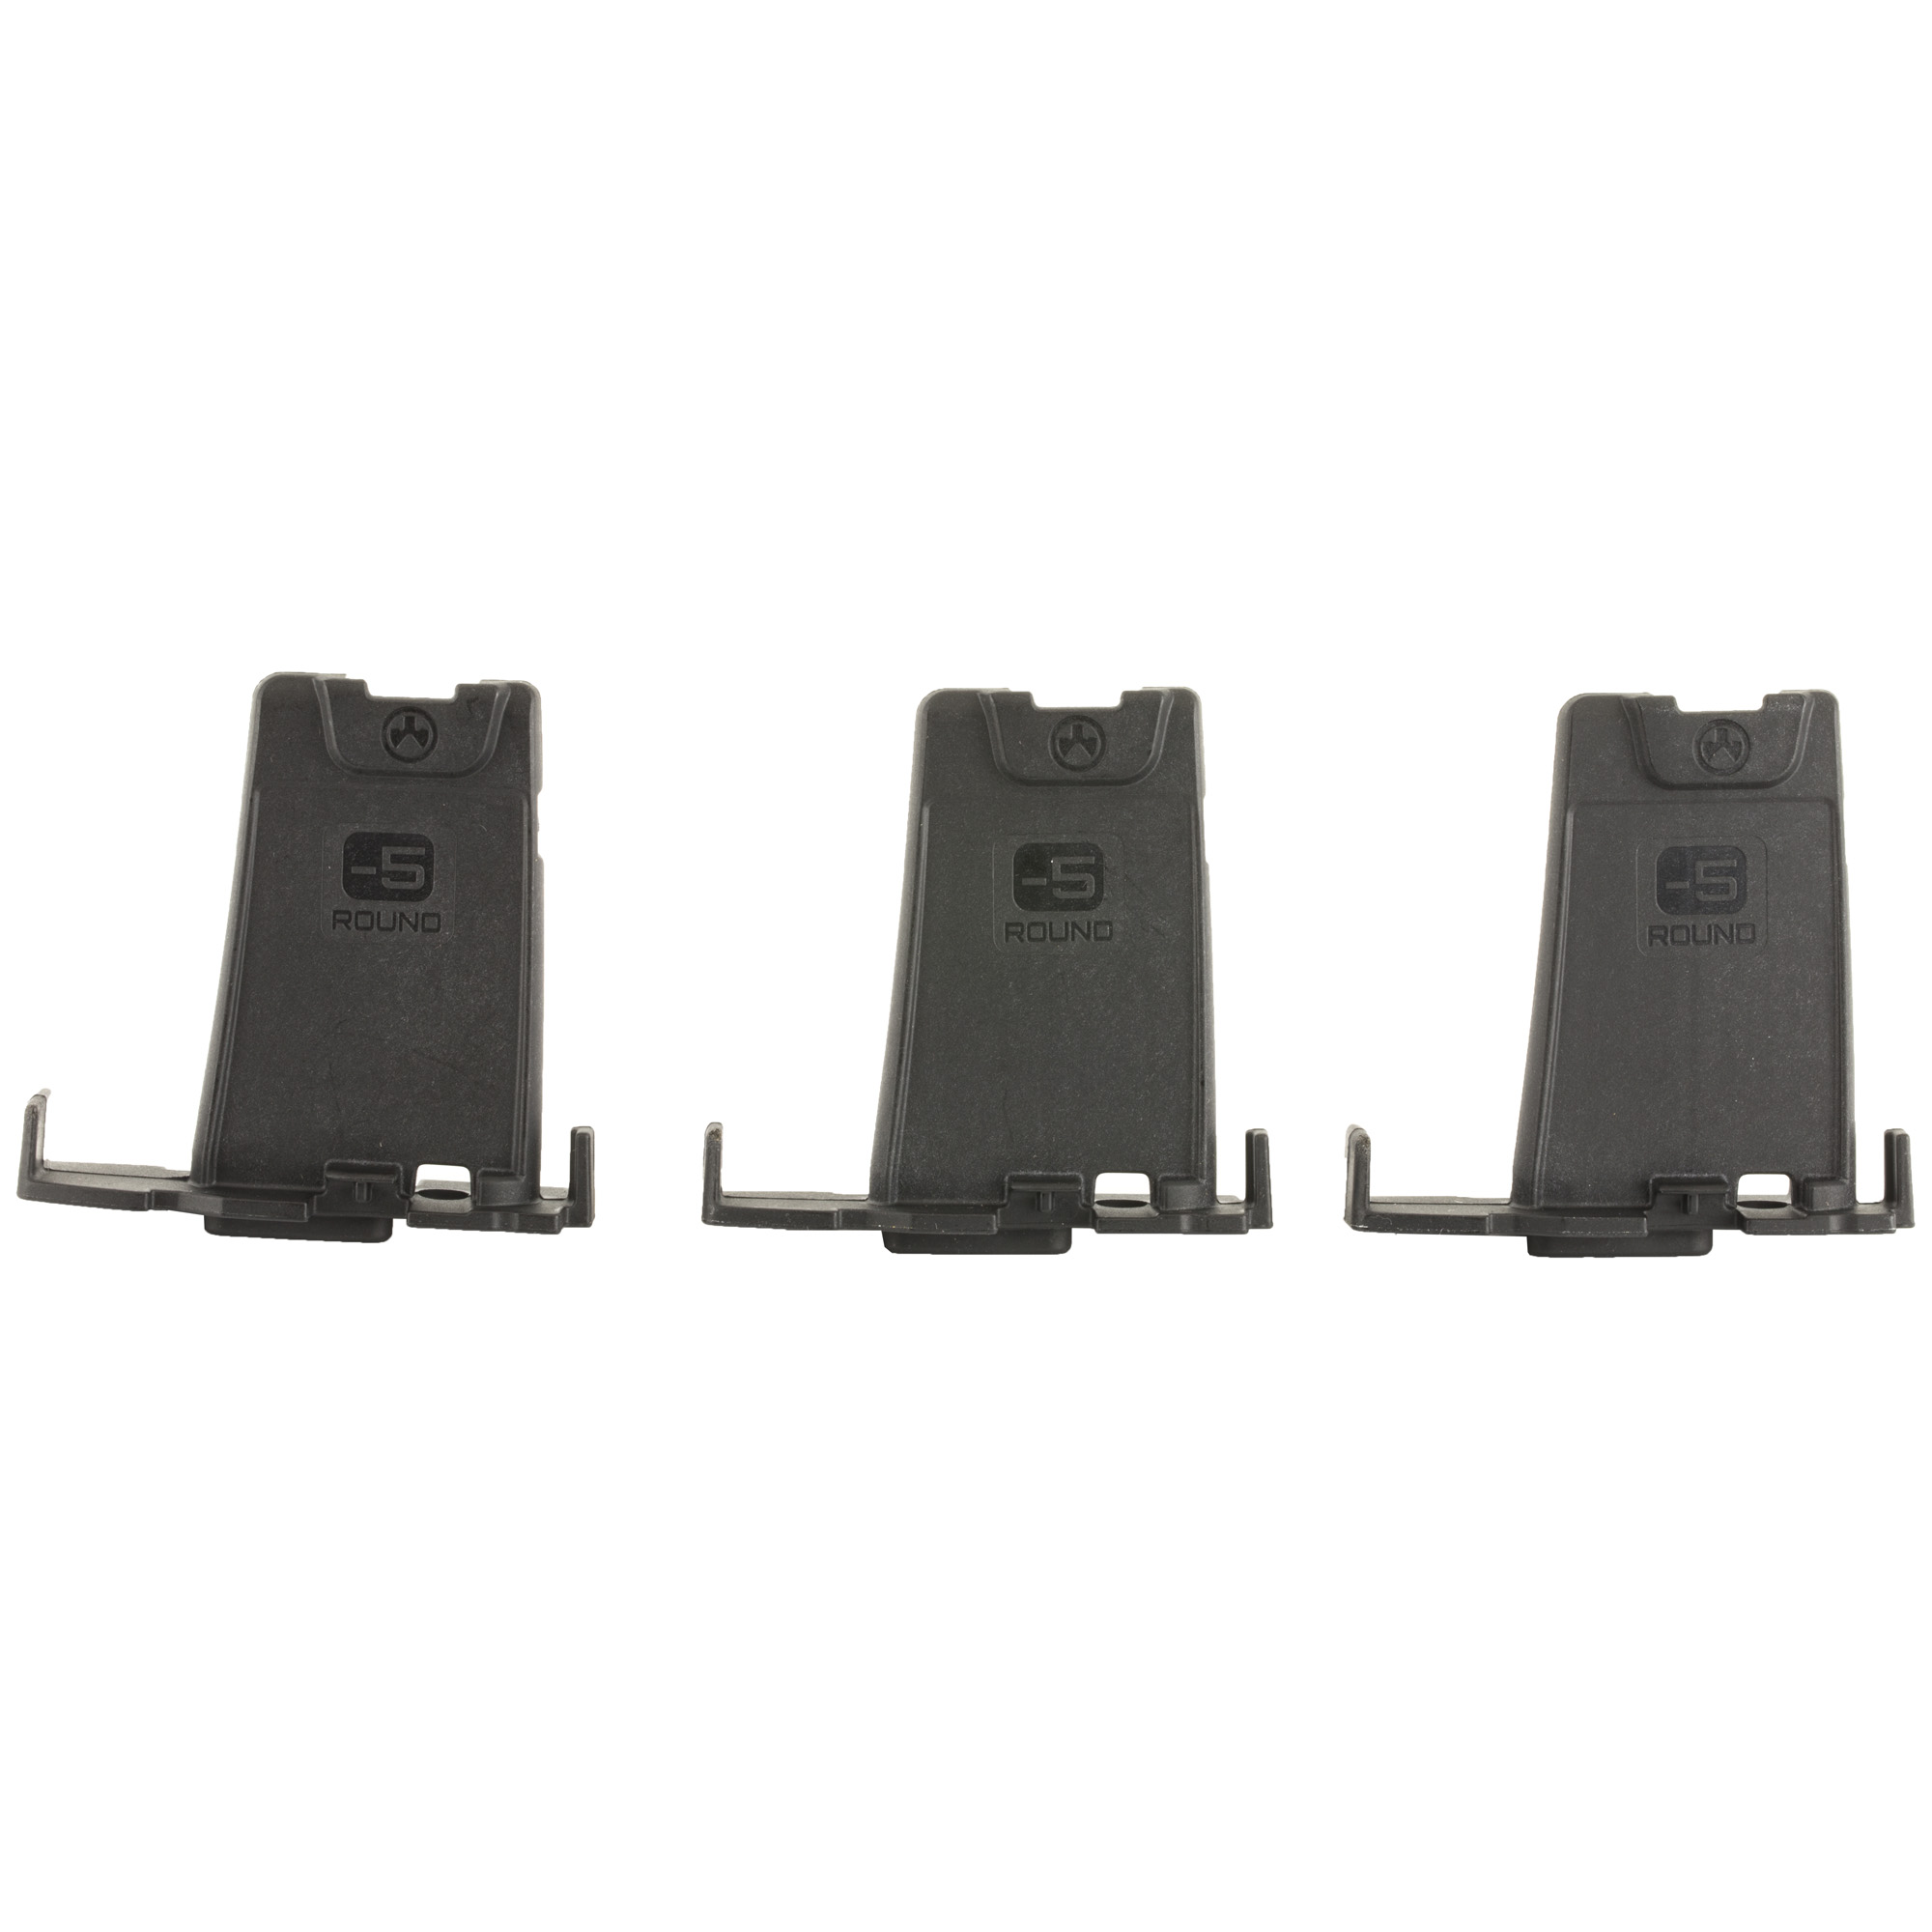 """The PMAG Minus 5 Round Limiter installs in 10"""" 20"""" or 30 round GEN M3 PMAG bodies"""" reducing the magazine capacity by five rounds. Designed for sporting and hunting applications"""" installation of the Limiter is simple"""" tool-less"""" and requires no permanent modification of the magazine body. NOTE: Will NOT make a banned magazine legal! This product is intended for TEMPORARY capacity reduction of PMAG AR/M4 GEN M3 magazines. This product does not constitute a permanent capacity reduction. The user is responsible for knowing applicable laws in any jurisdiction that restricts magazines based on capacity or regulates magazine capacity for hunting. Please check all laws and regulations of your state and locality to determine the legality of your host ammunition magazines."""